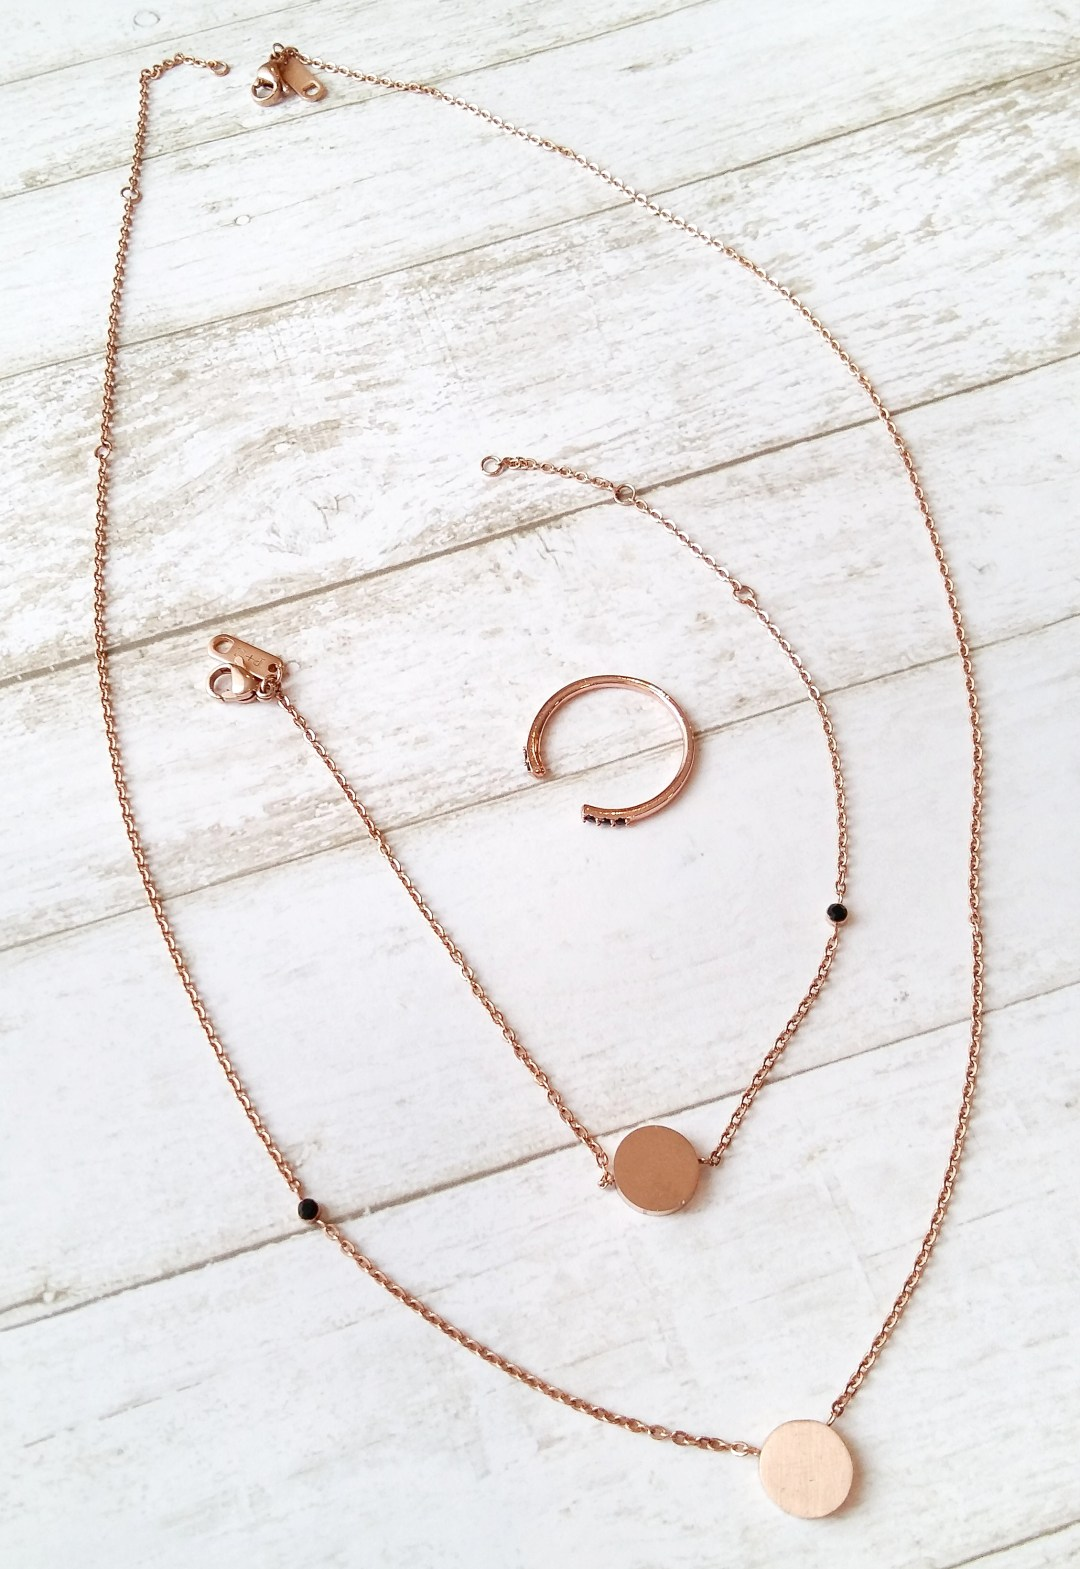 A Penny + Grace rose gold jewellery set. Receive a totally affordable jewellery subscription box every month containing the sweetest delicate pieces!